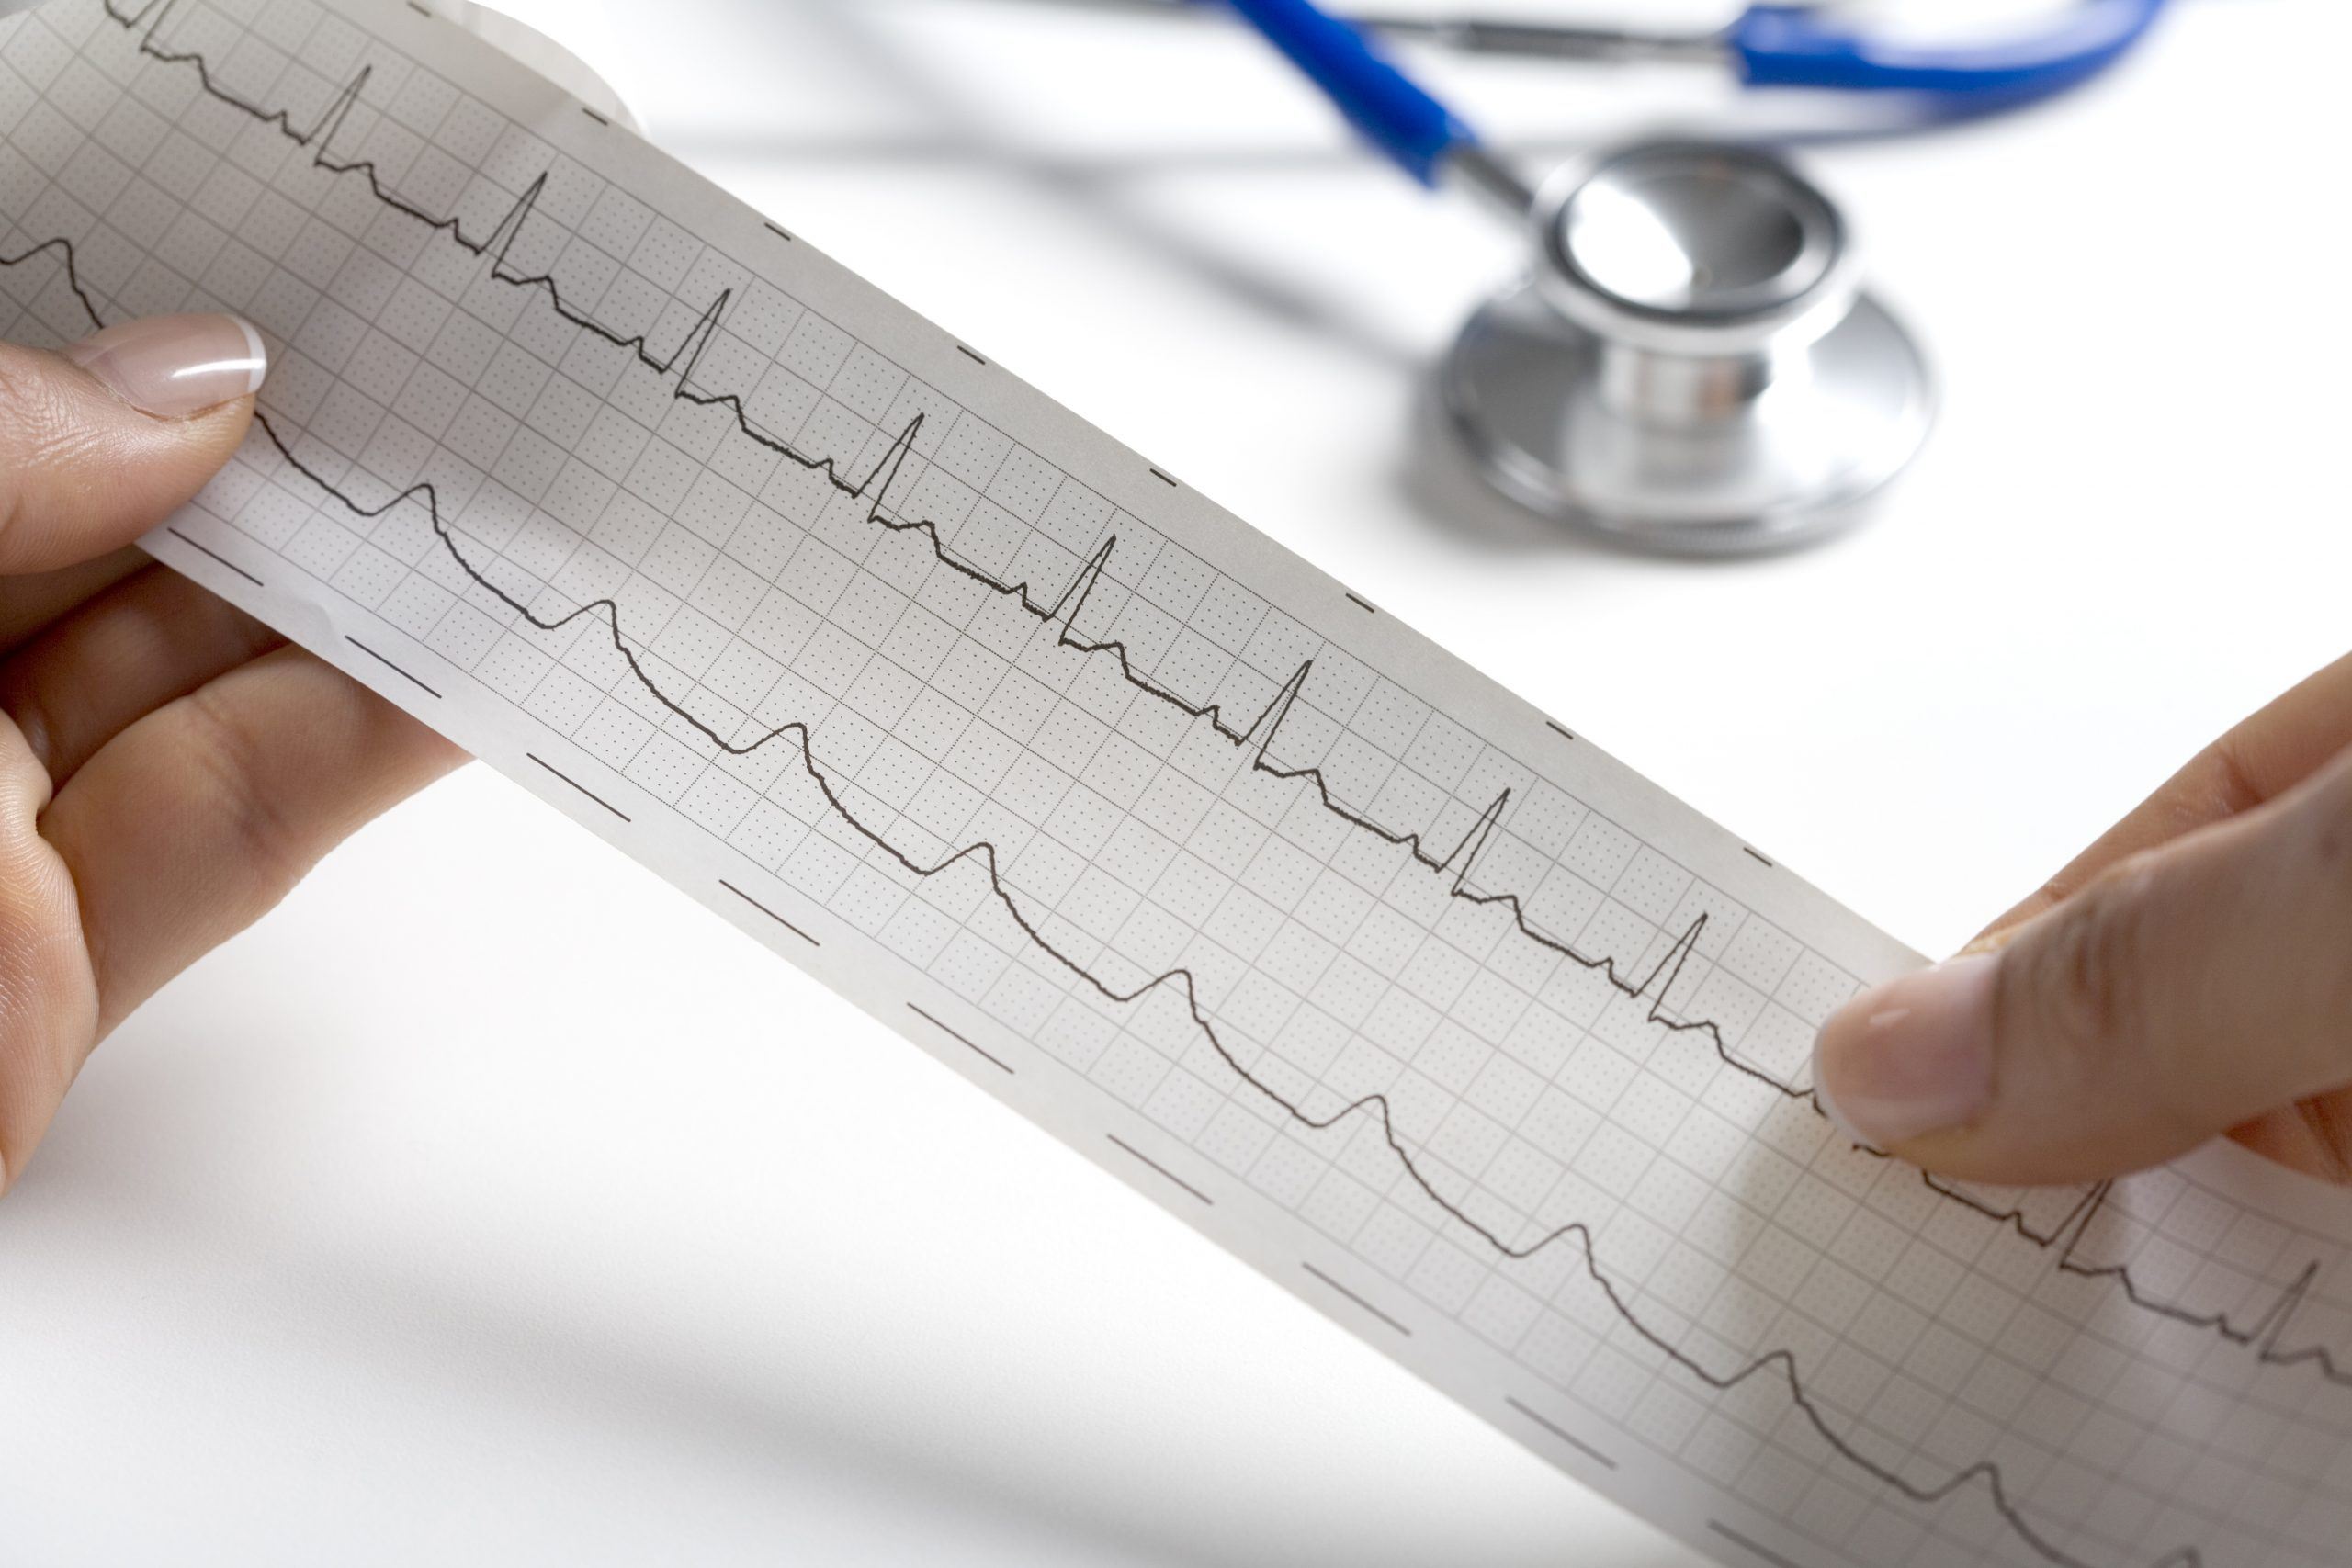 Hands Holding A Regular Ecg With A Stethoscope In The Background